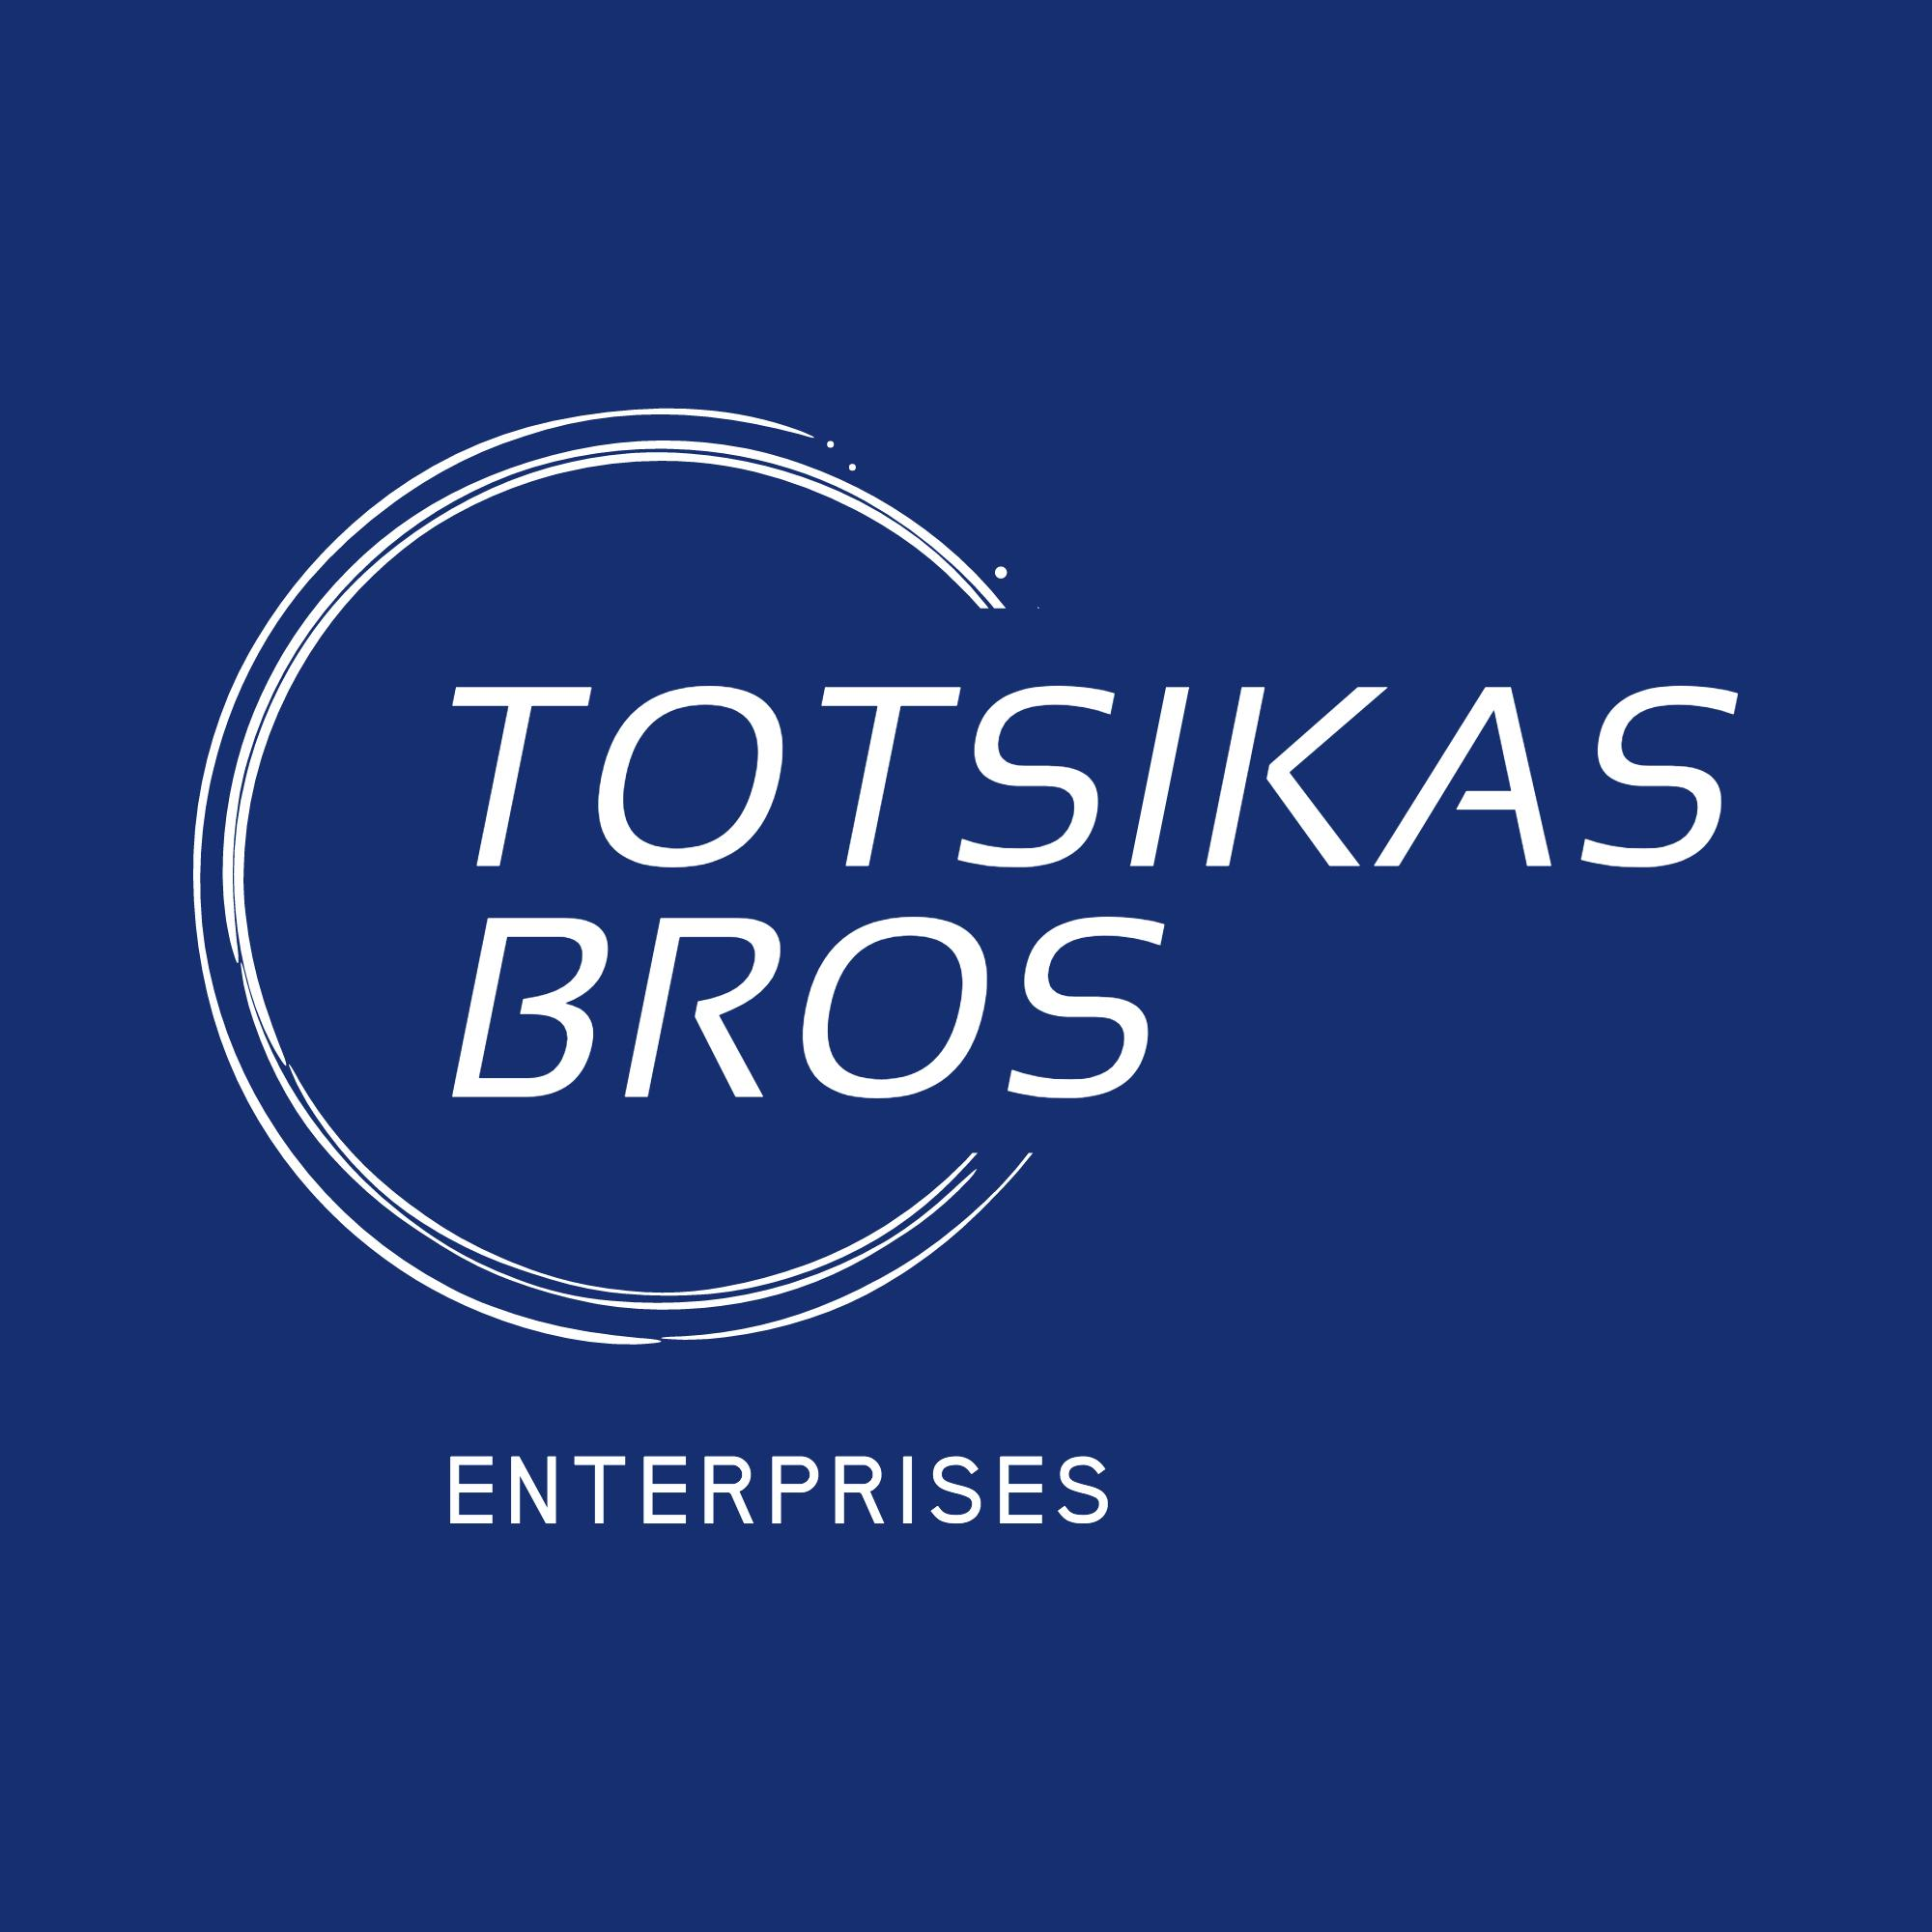 Totsikas Enterprises